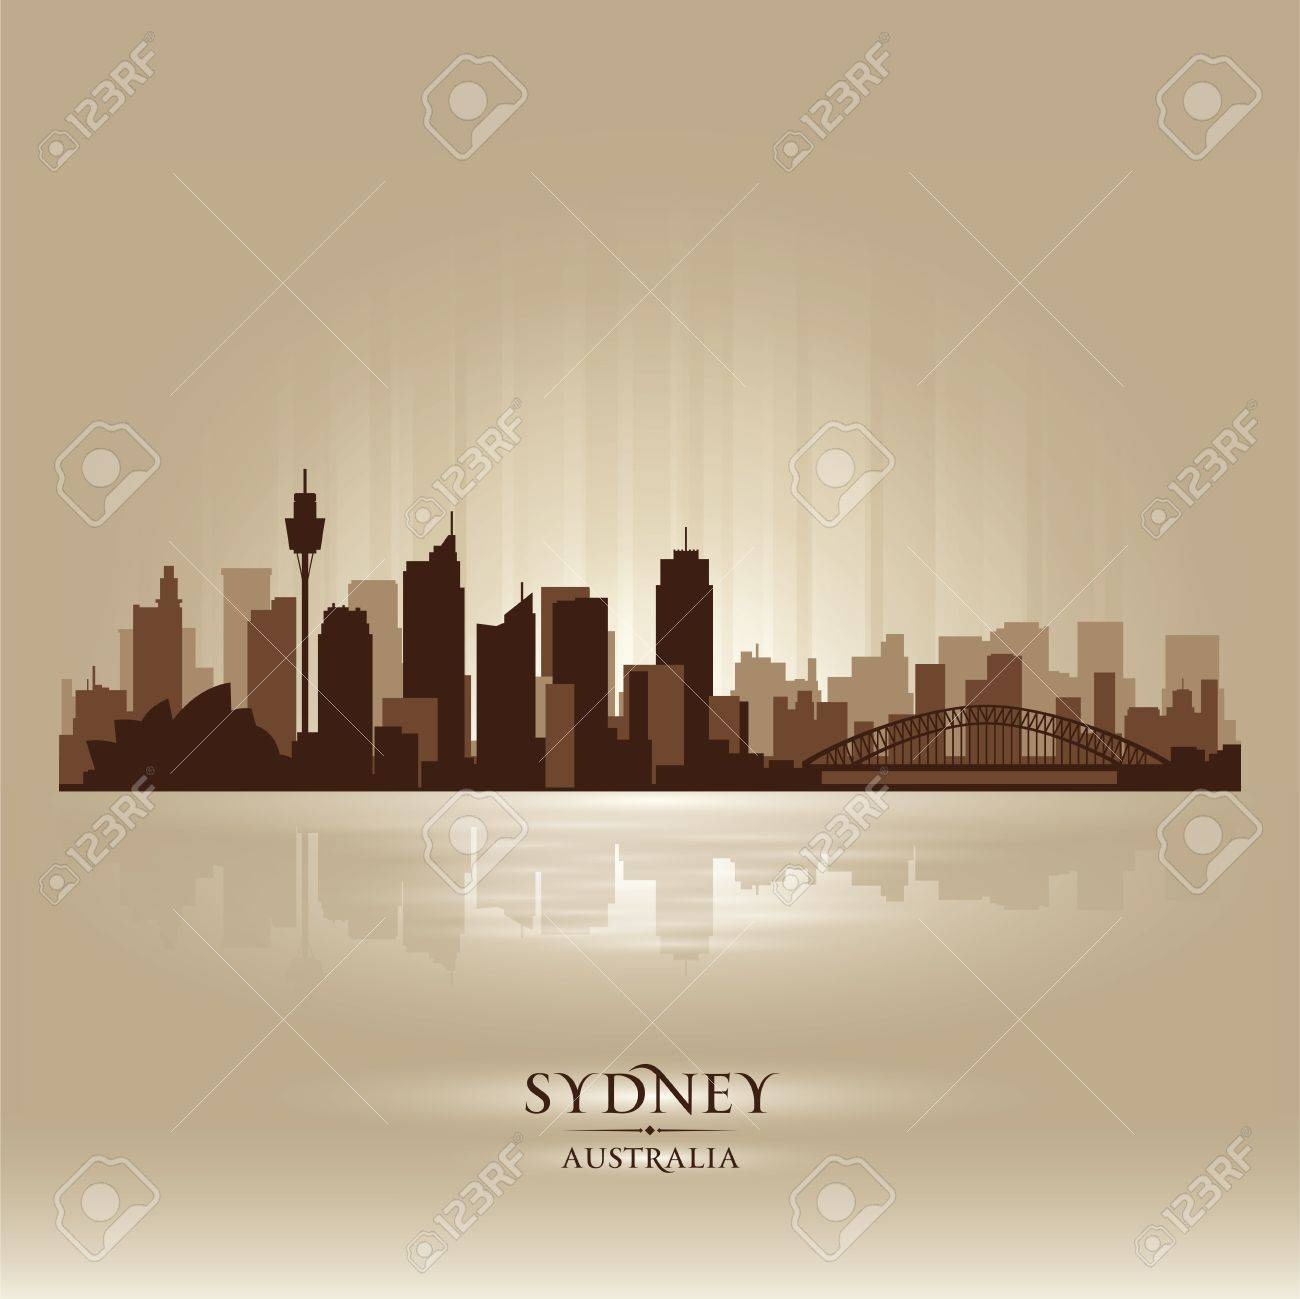 Sydney Australia skyline city silhouette Stock Vector - 18259211